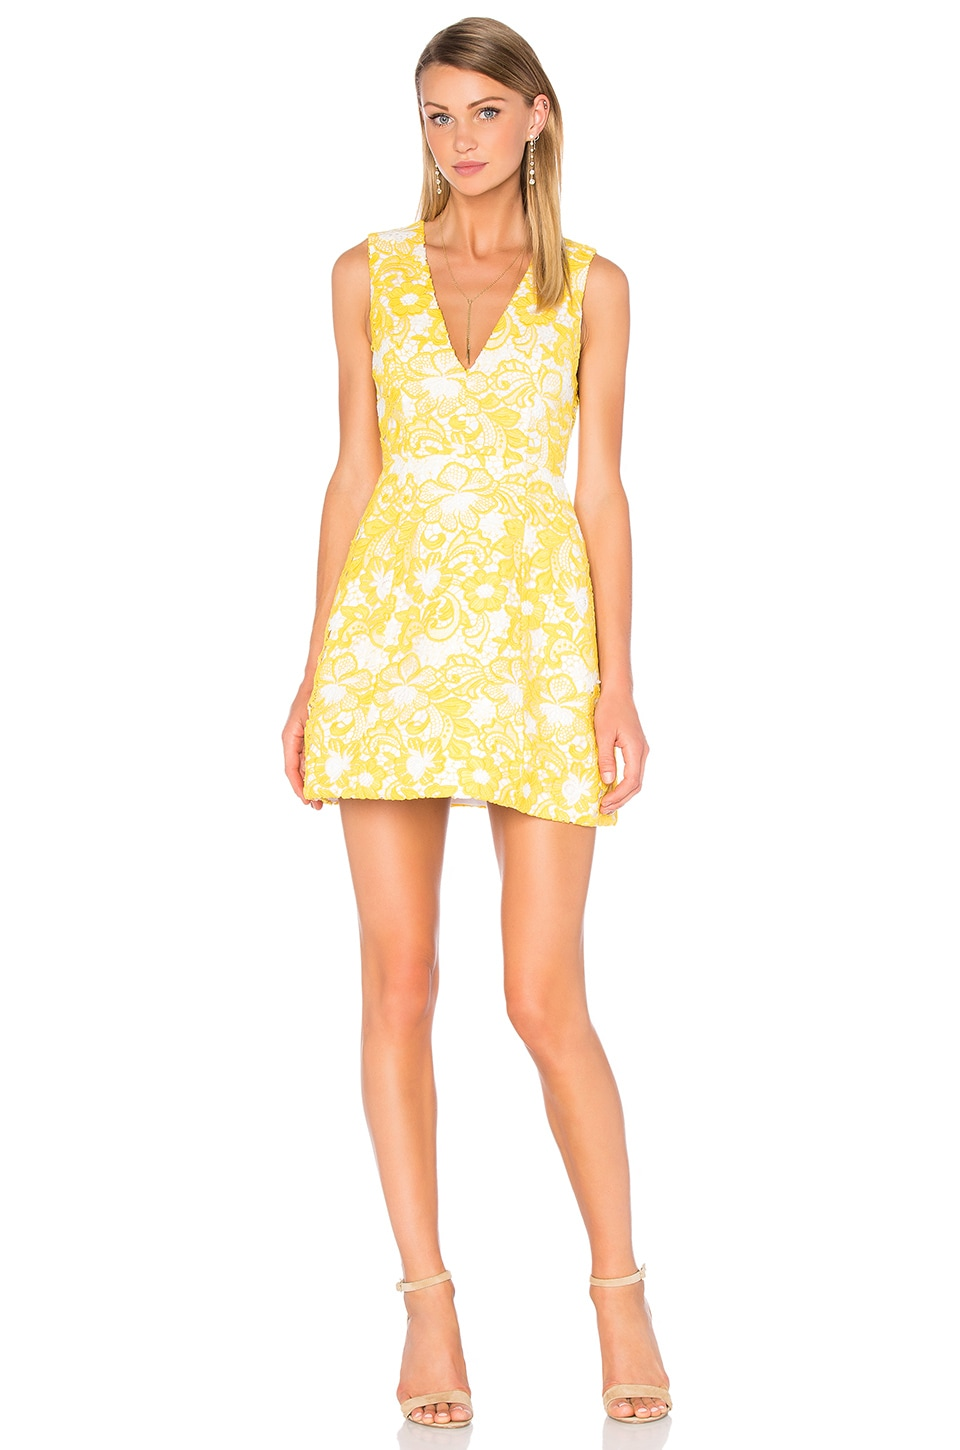 Alice + Olivia Pacey Embroidered Dress in Yellow & White